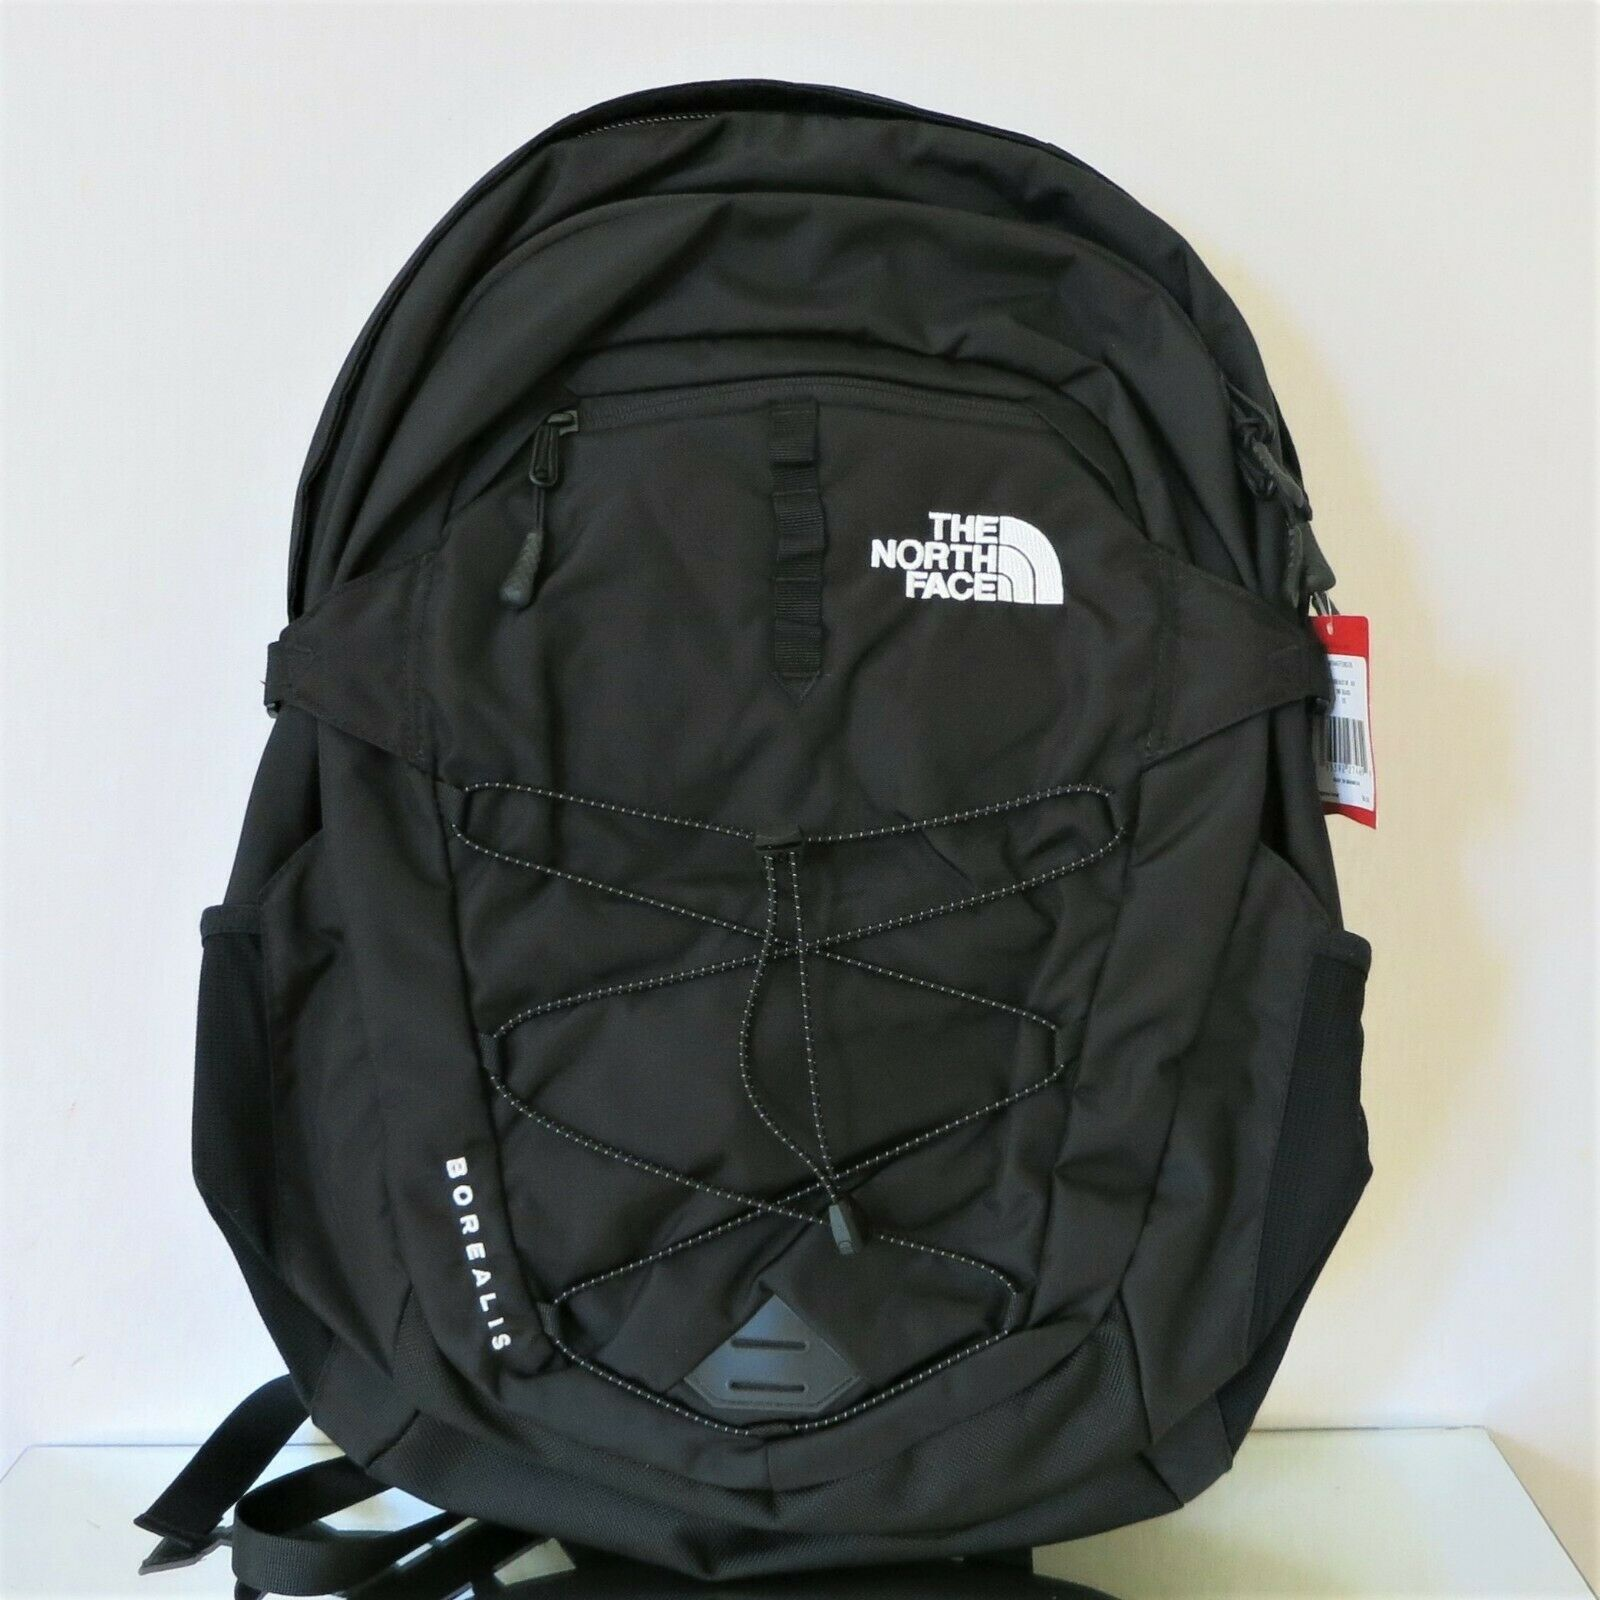 THE NORTH FACE BOREALIS BACKPACK TNF BLACK for sale online